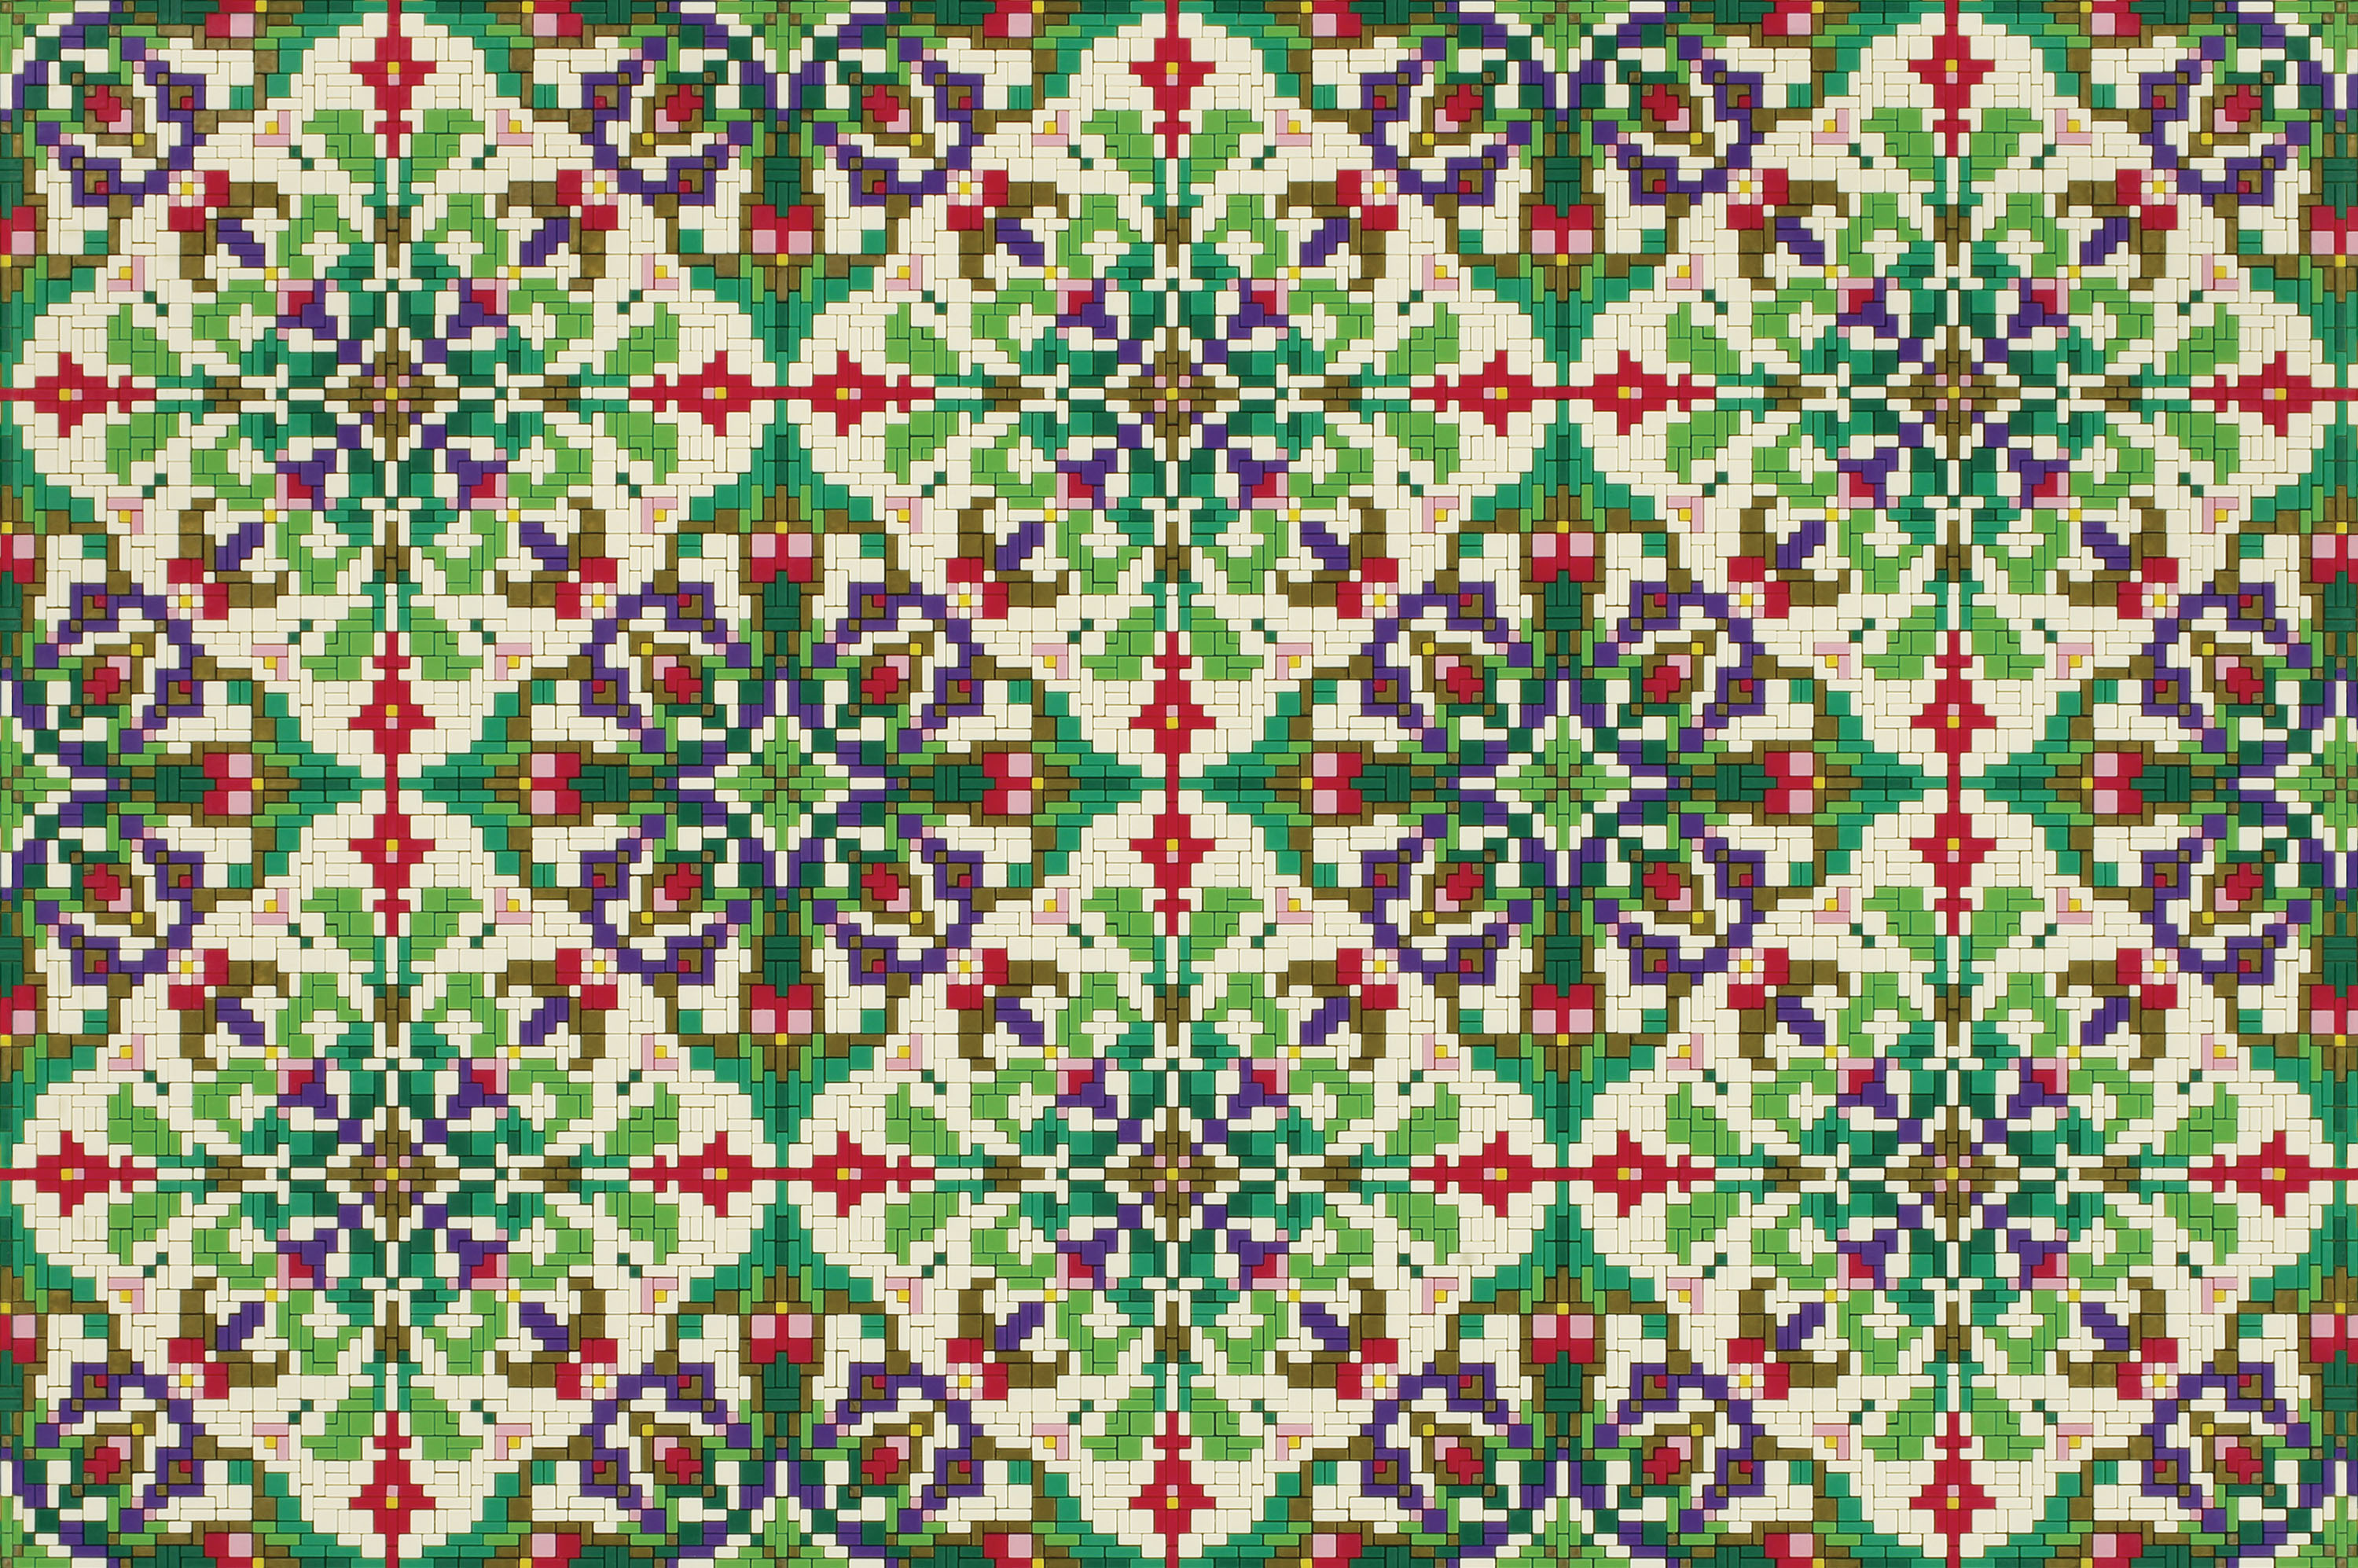 Mosaic-Ornaments_01.01